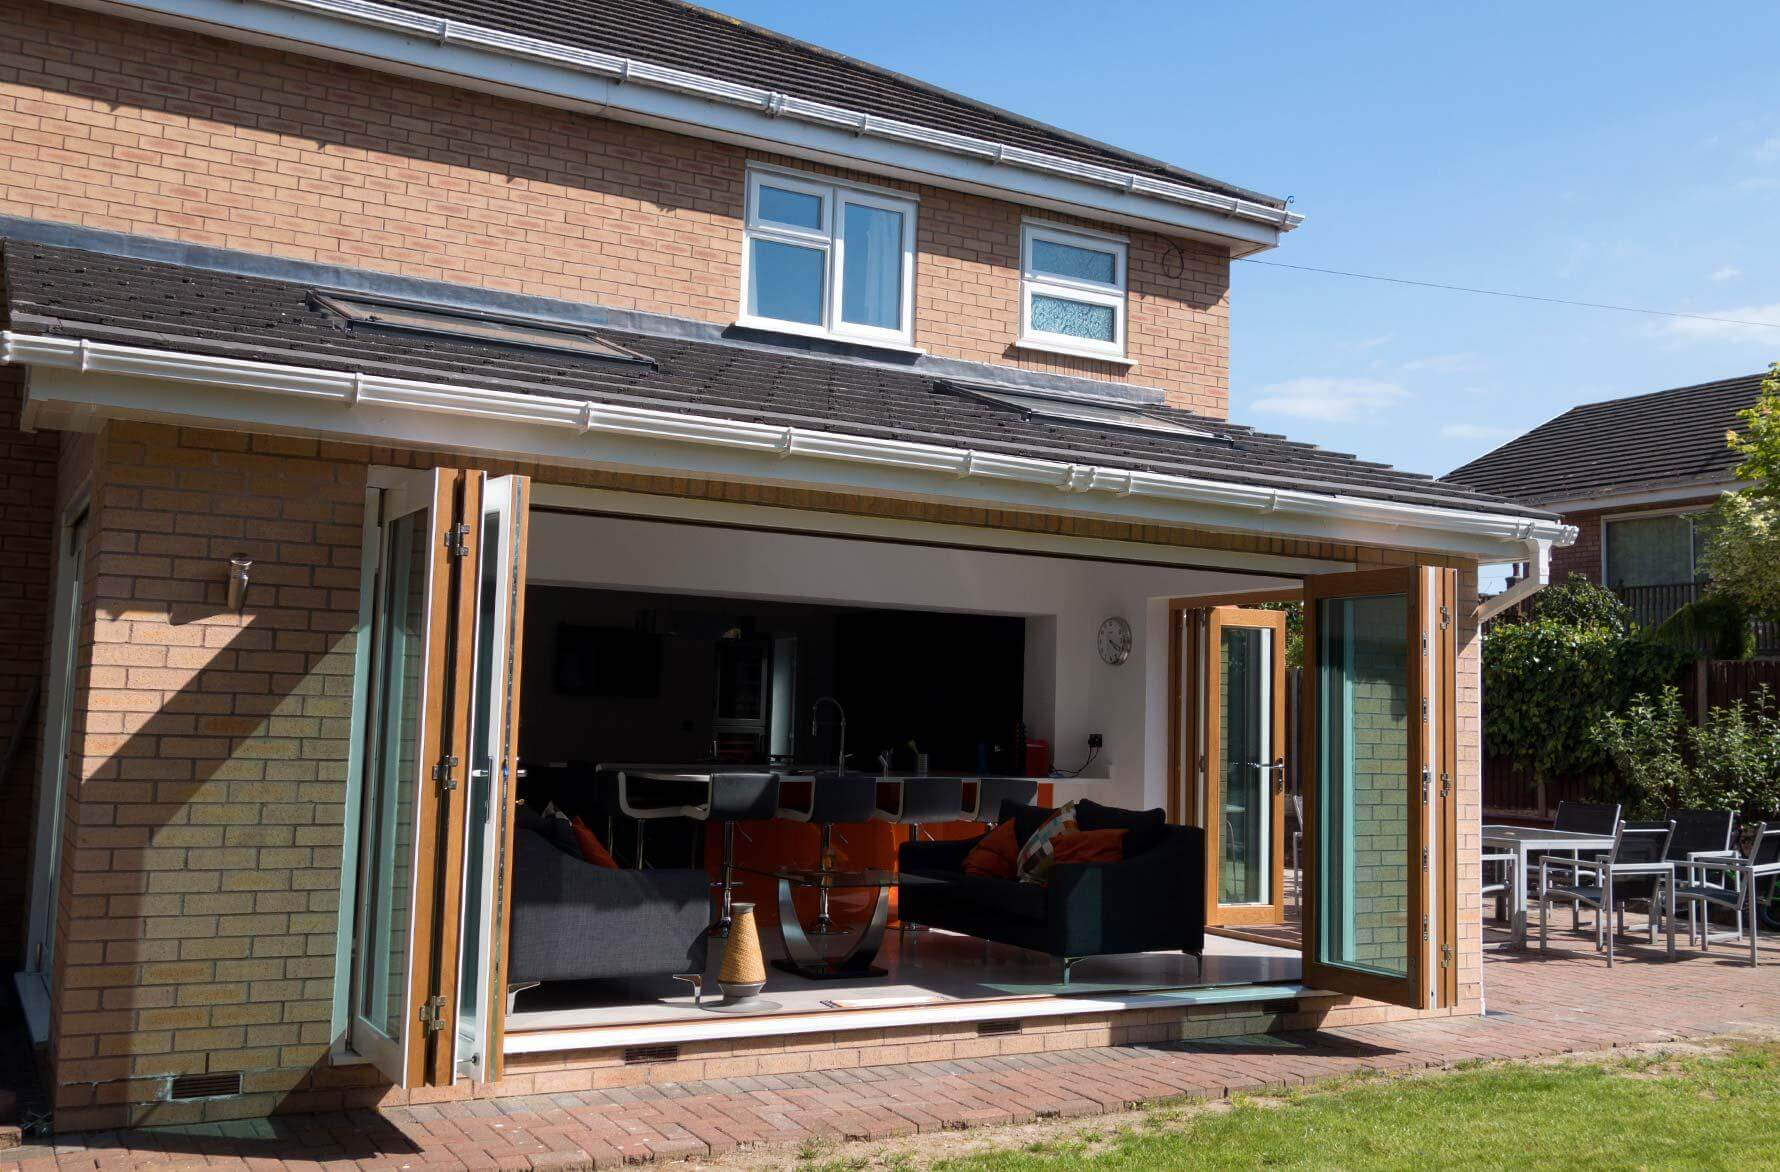 Bifold doors bring more light into the home